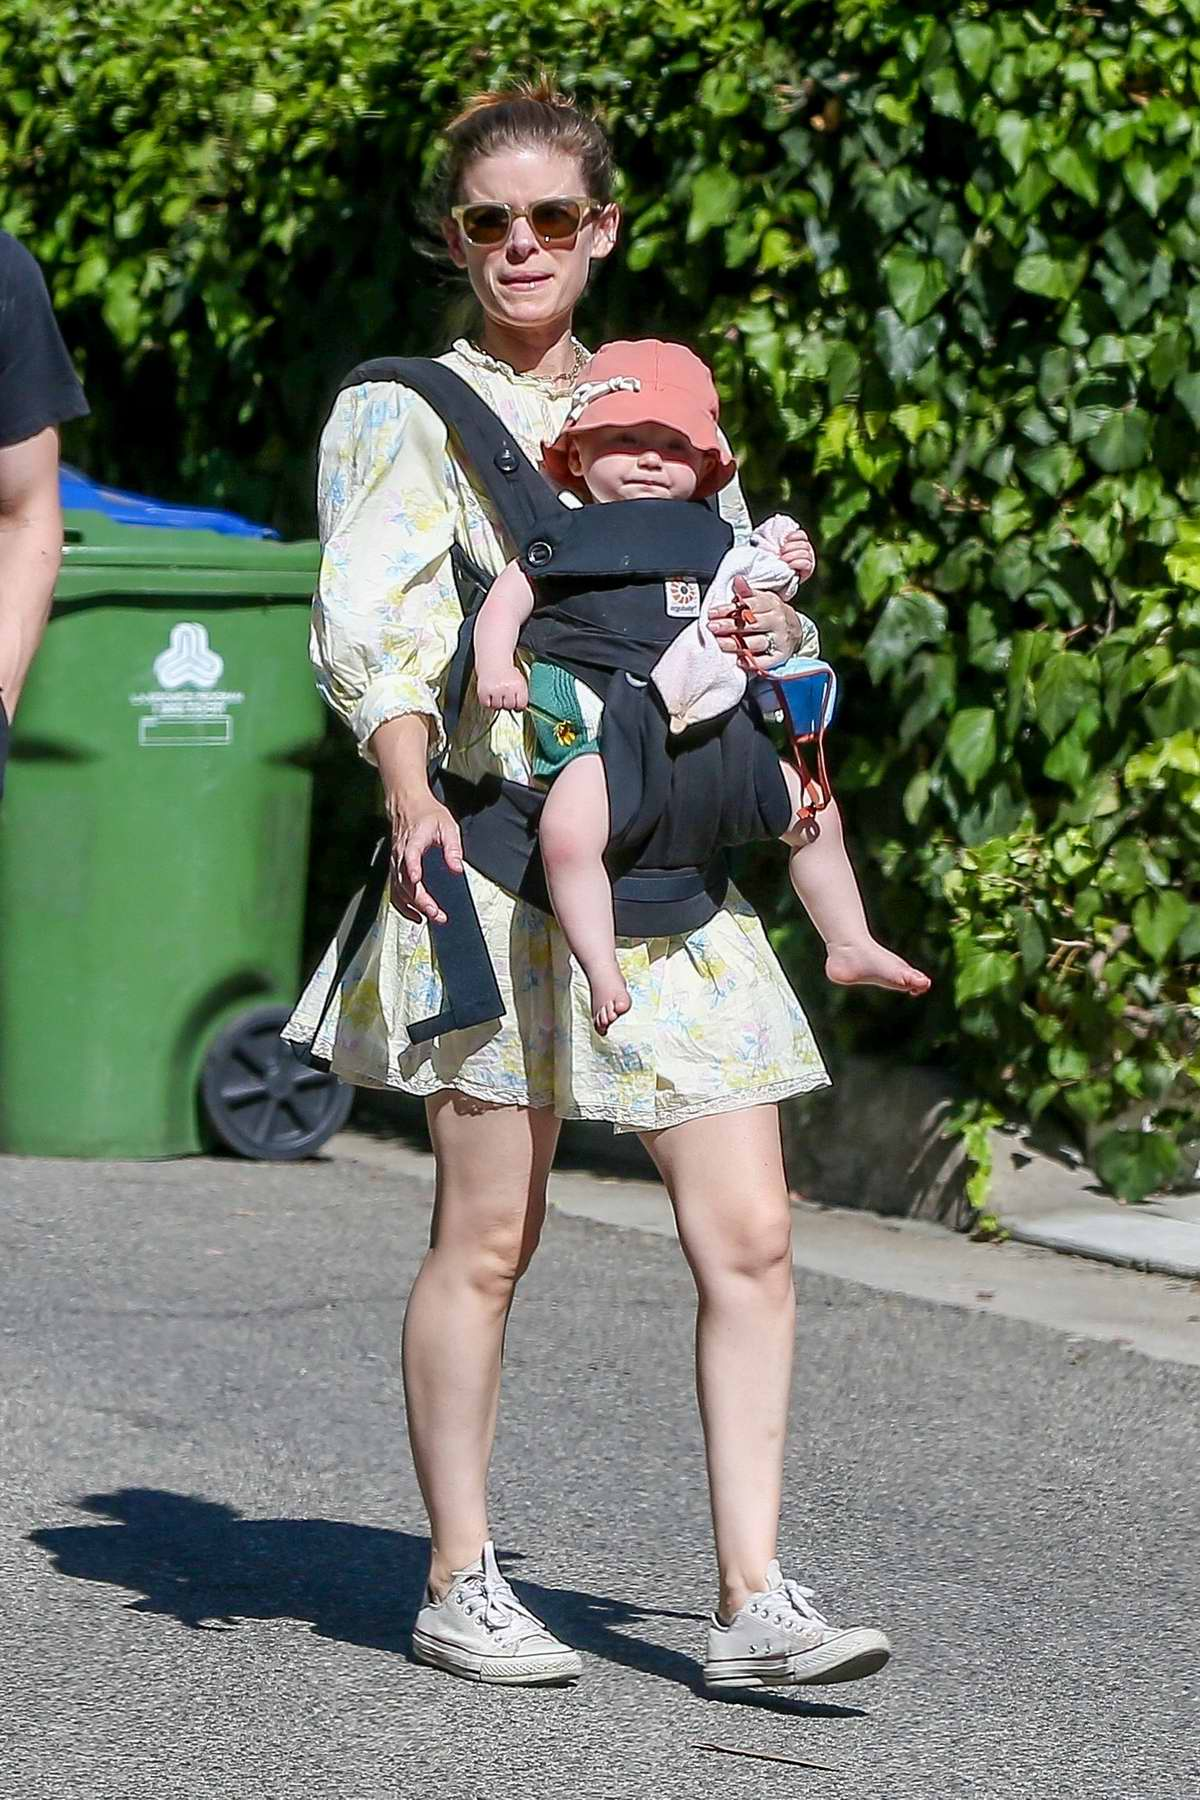 Kate Mara and Jamie Bell take their kids out for a walk around their neighborhood in Los Feliz, California